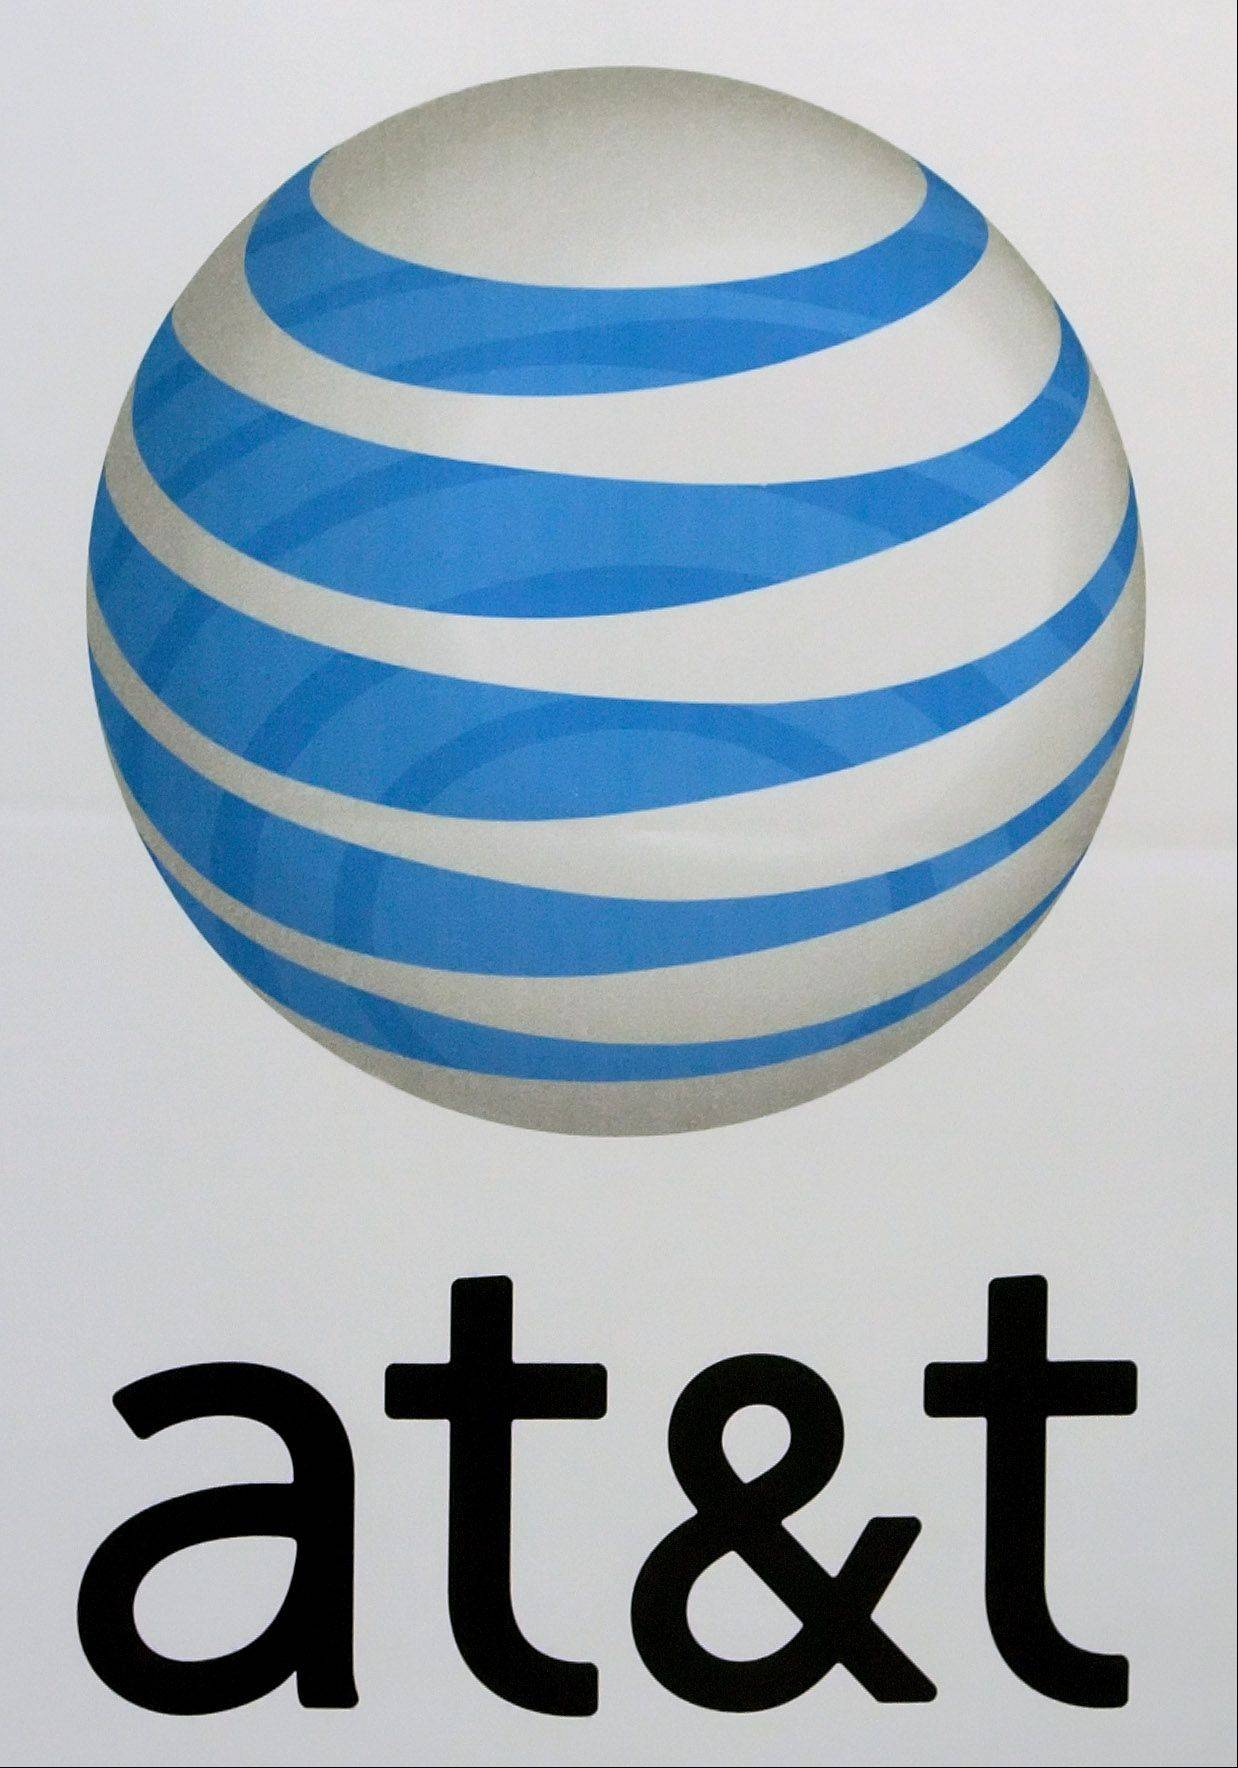 Under the AT&T Next option, customers can trade in their phone after a year and get a new one, paying no upgrade or activation fees. As an alternative, they can stop paying the installments after 20 months and keep the device.